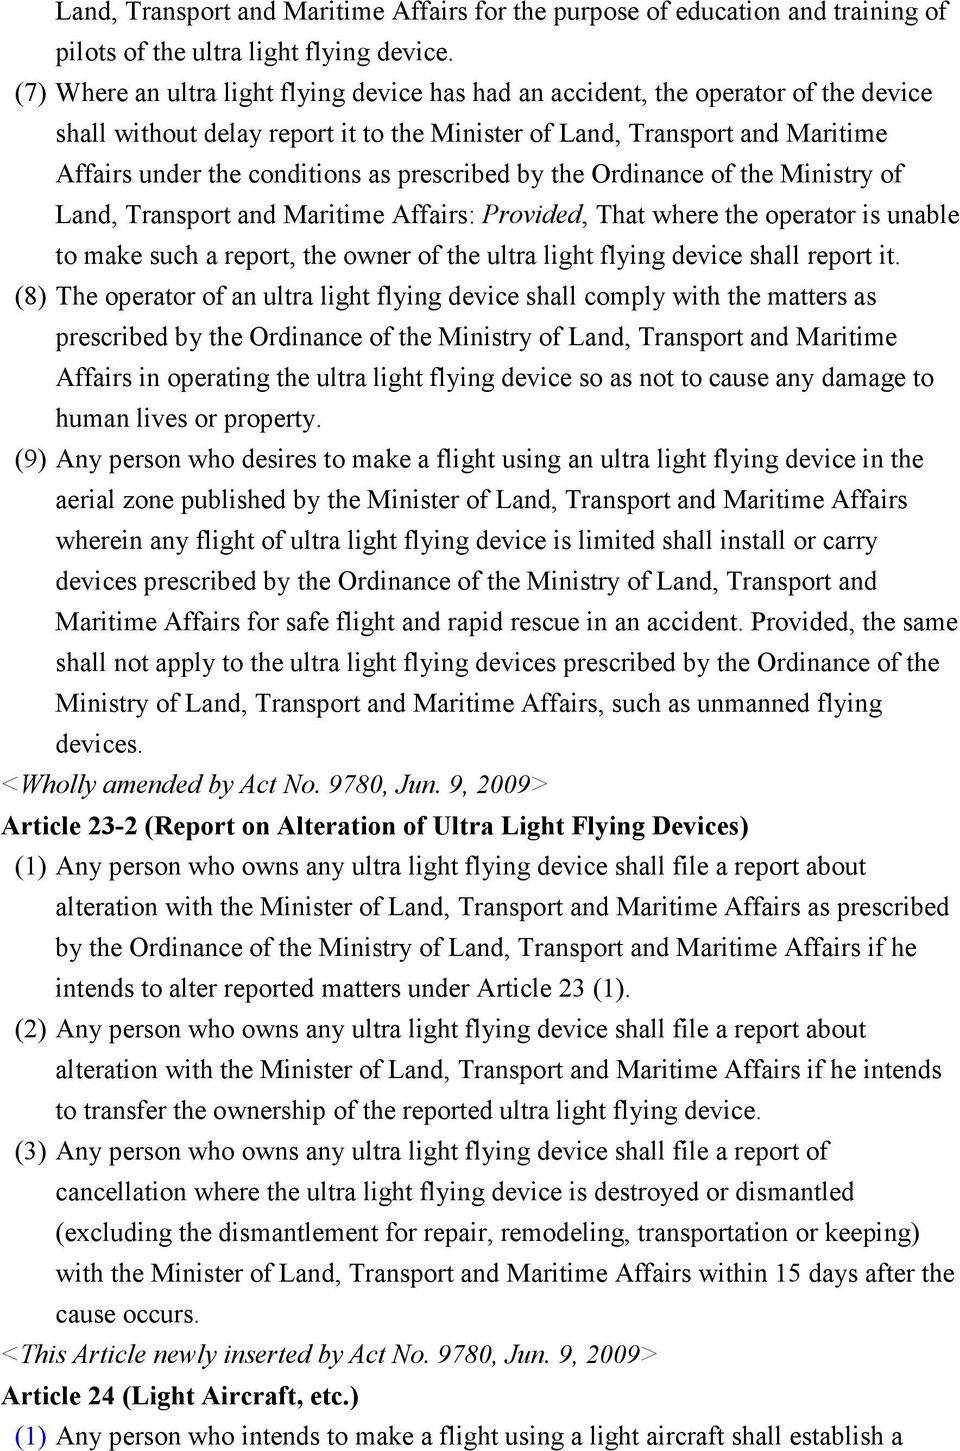 prescribed by the Ordinance of the Ministry of Land, Transport and Maritime Affairs: Provided, That where the operator is unable to make such a report, the owner of the ultra light flying device